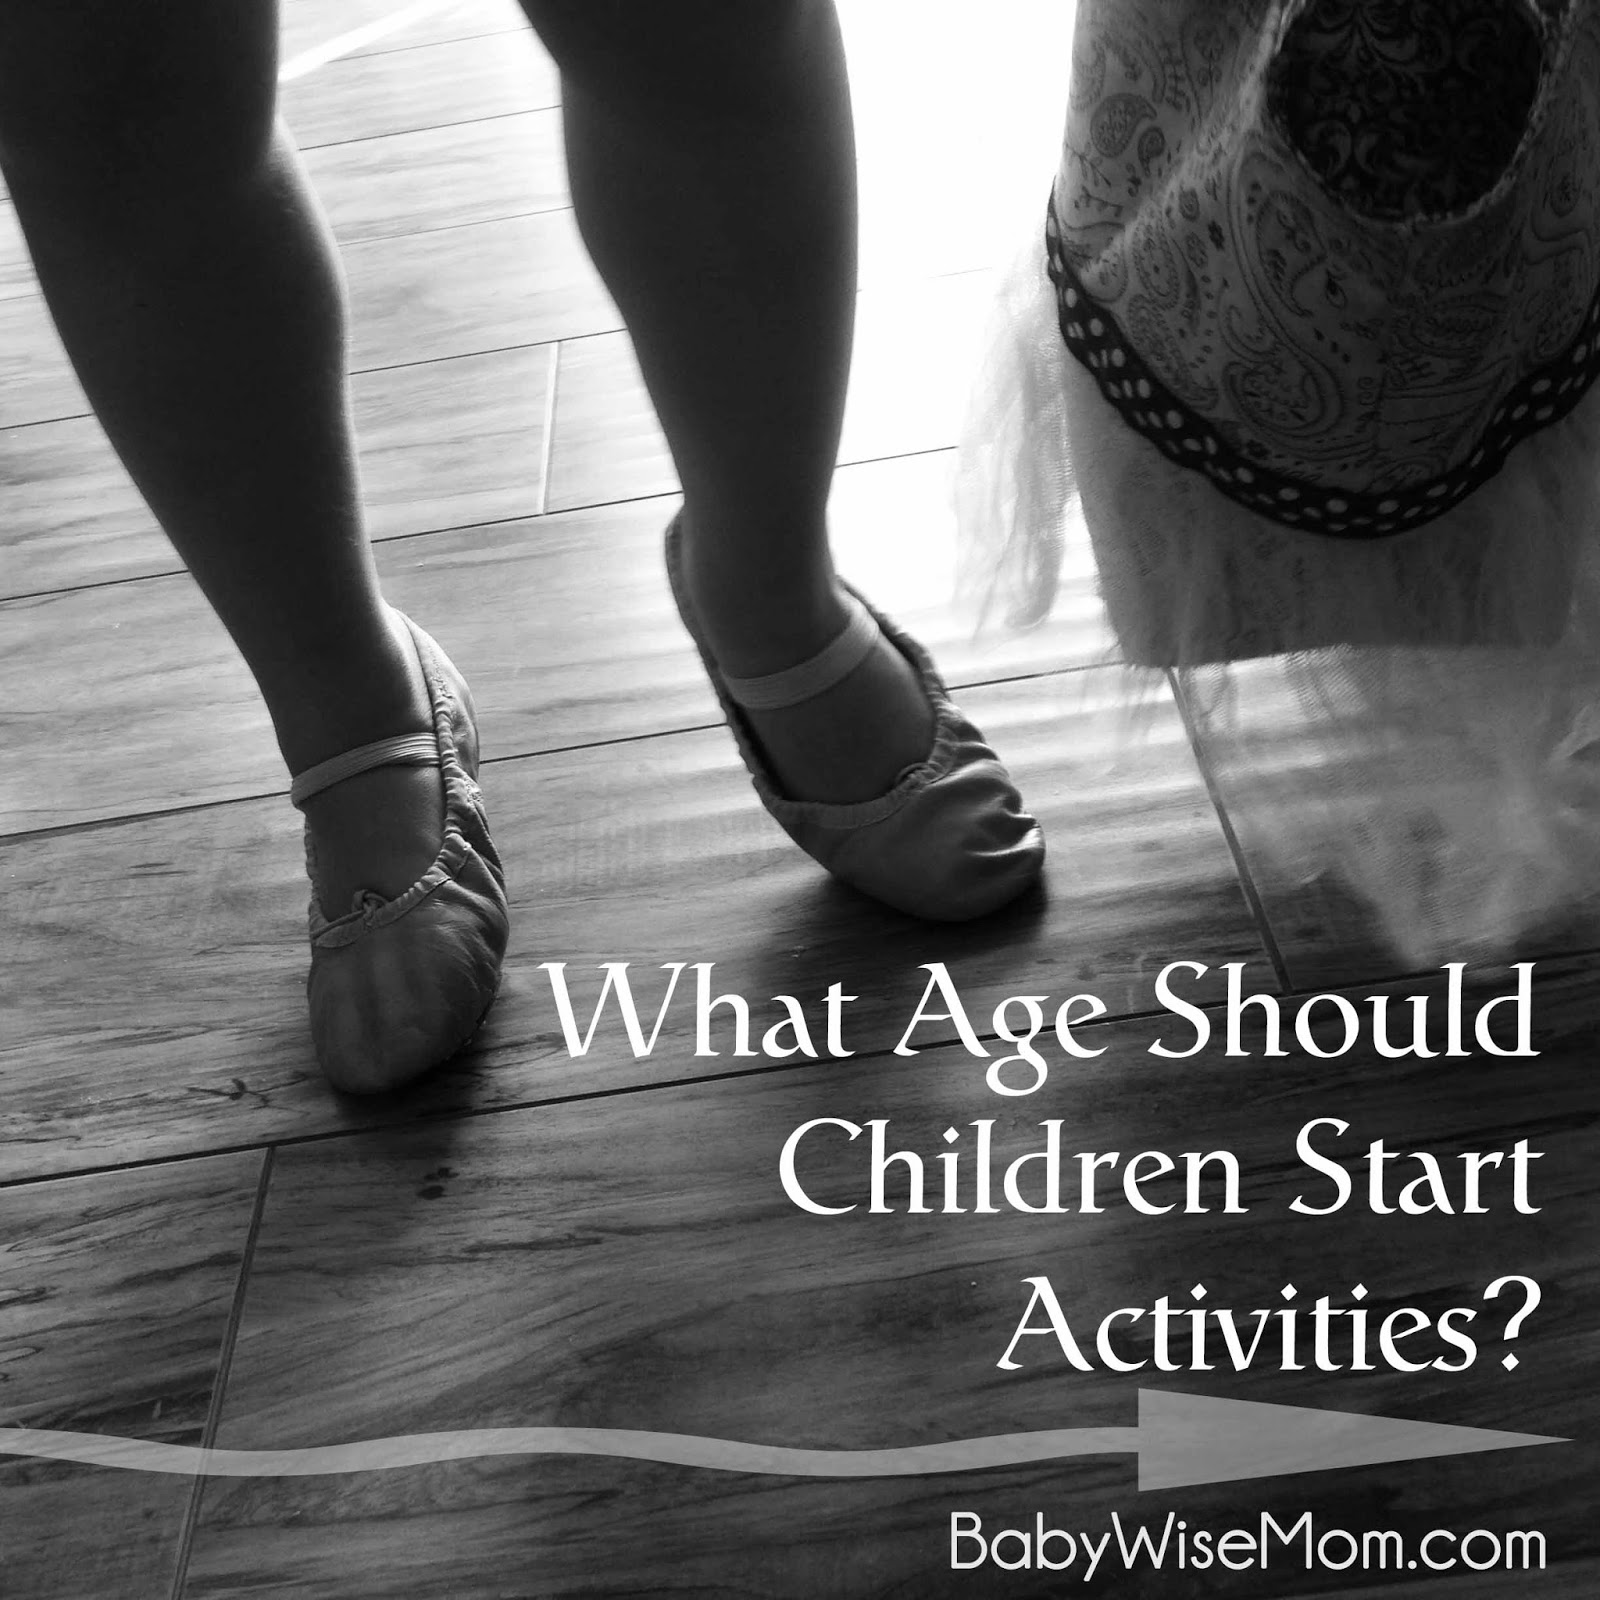 What Age Should Children Start Activities?